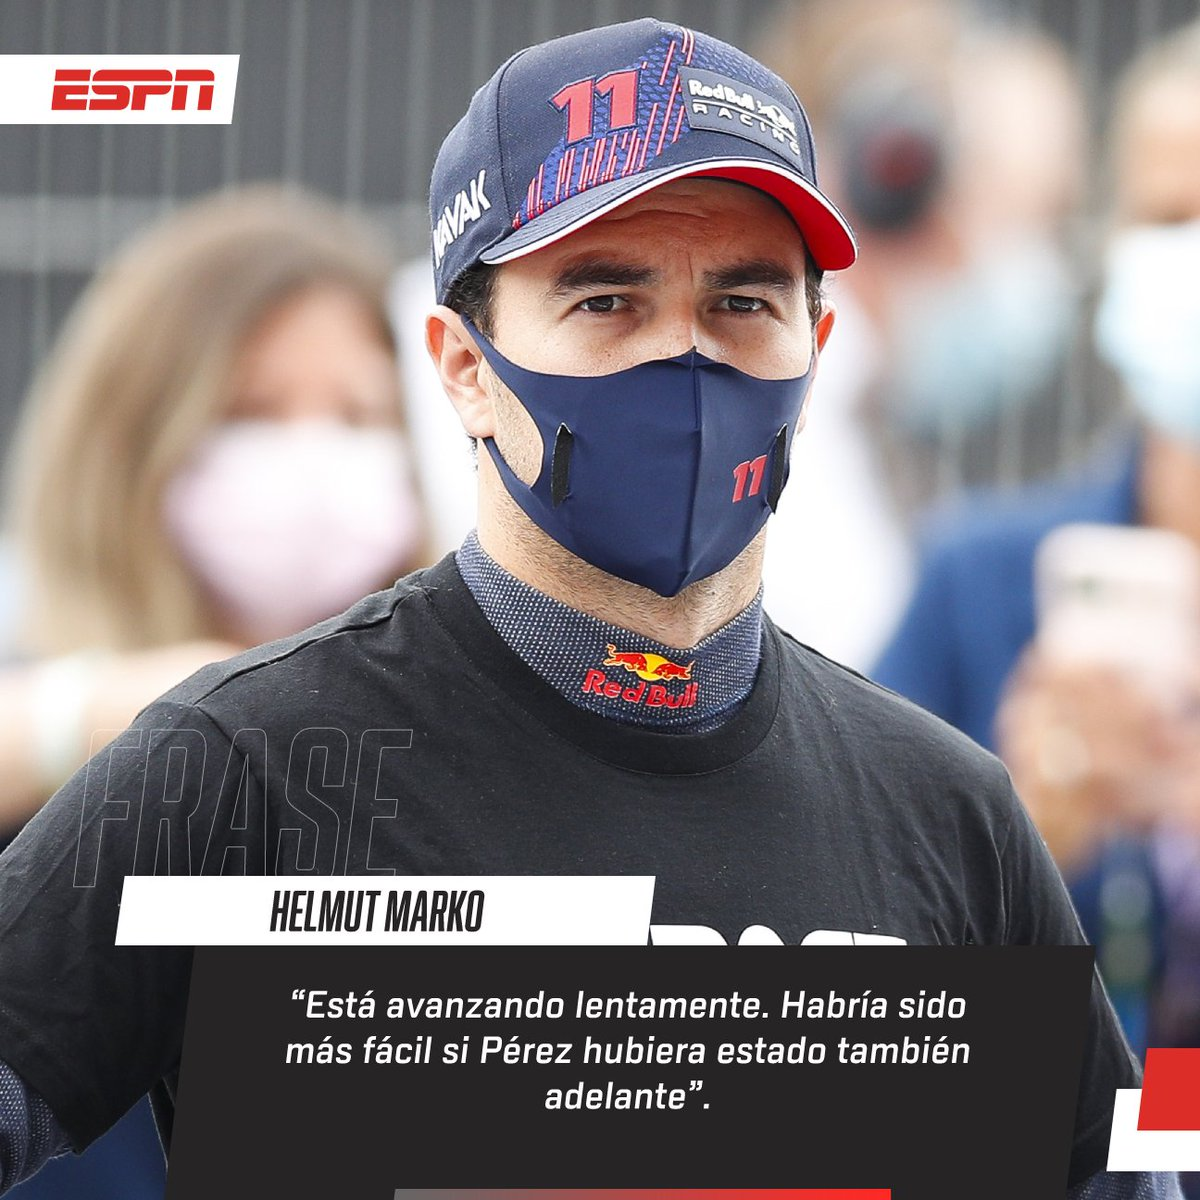 @ESPNmx's photo on Checo